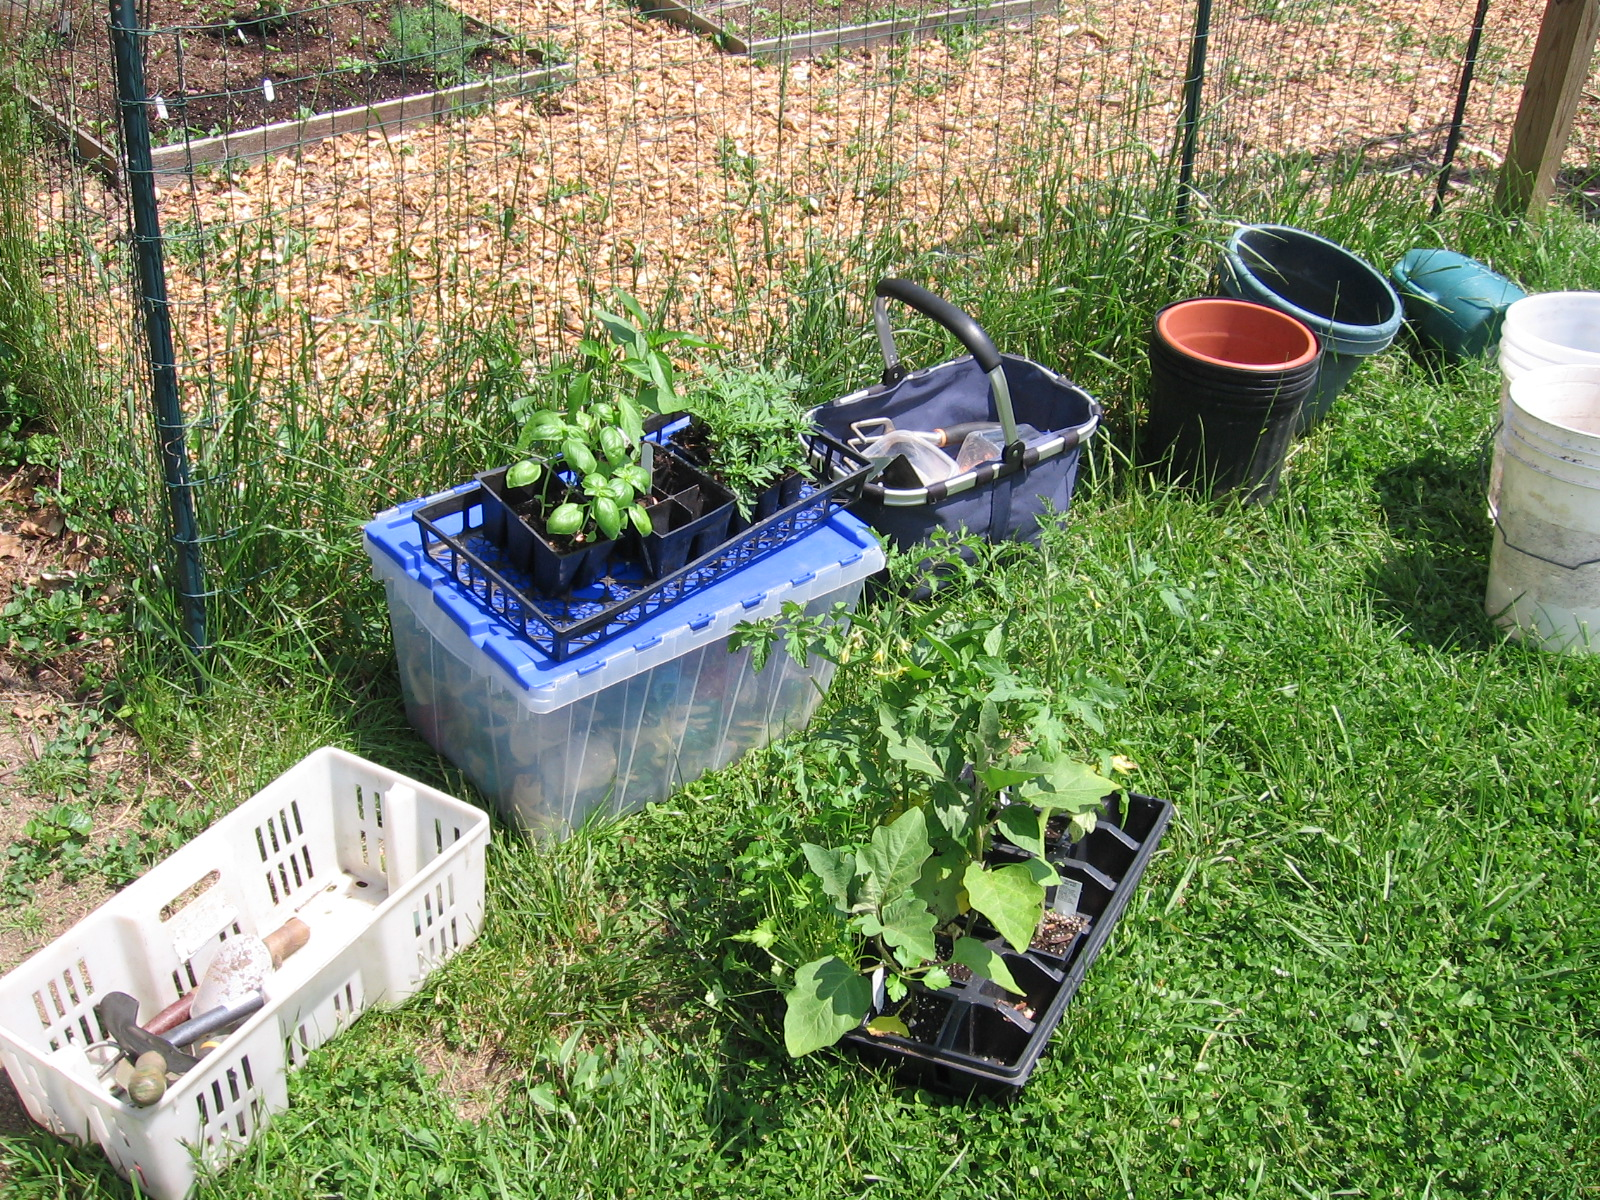 School vegetable gardens - At The Montessori School The Eight 4 X 4 Square Gardens Along With Two 8 X 3 Toddler Gardens Are More Than One Teacher With Rotating Classes Can Manage